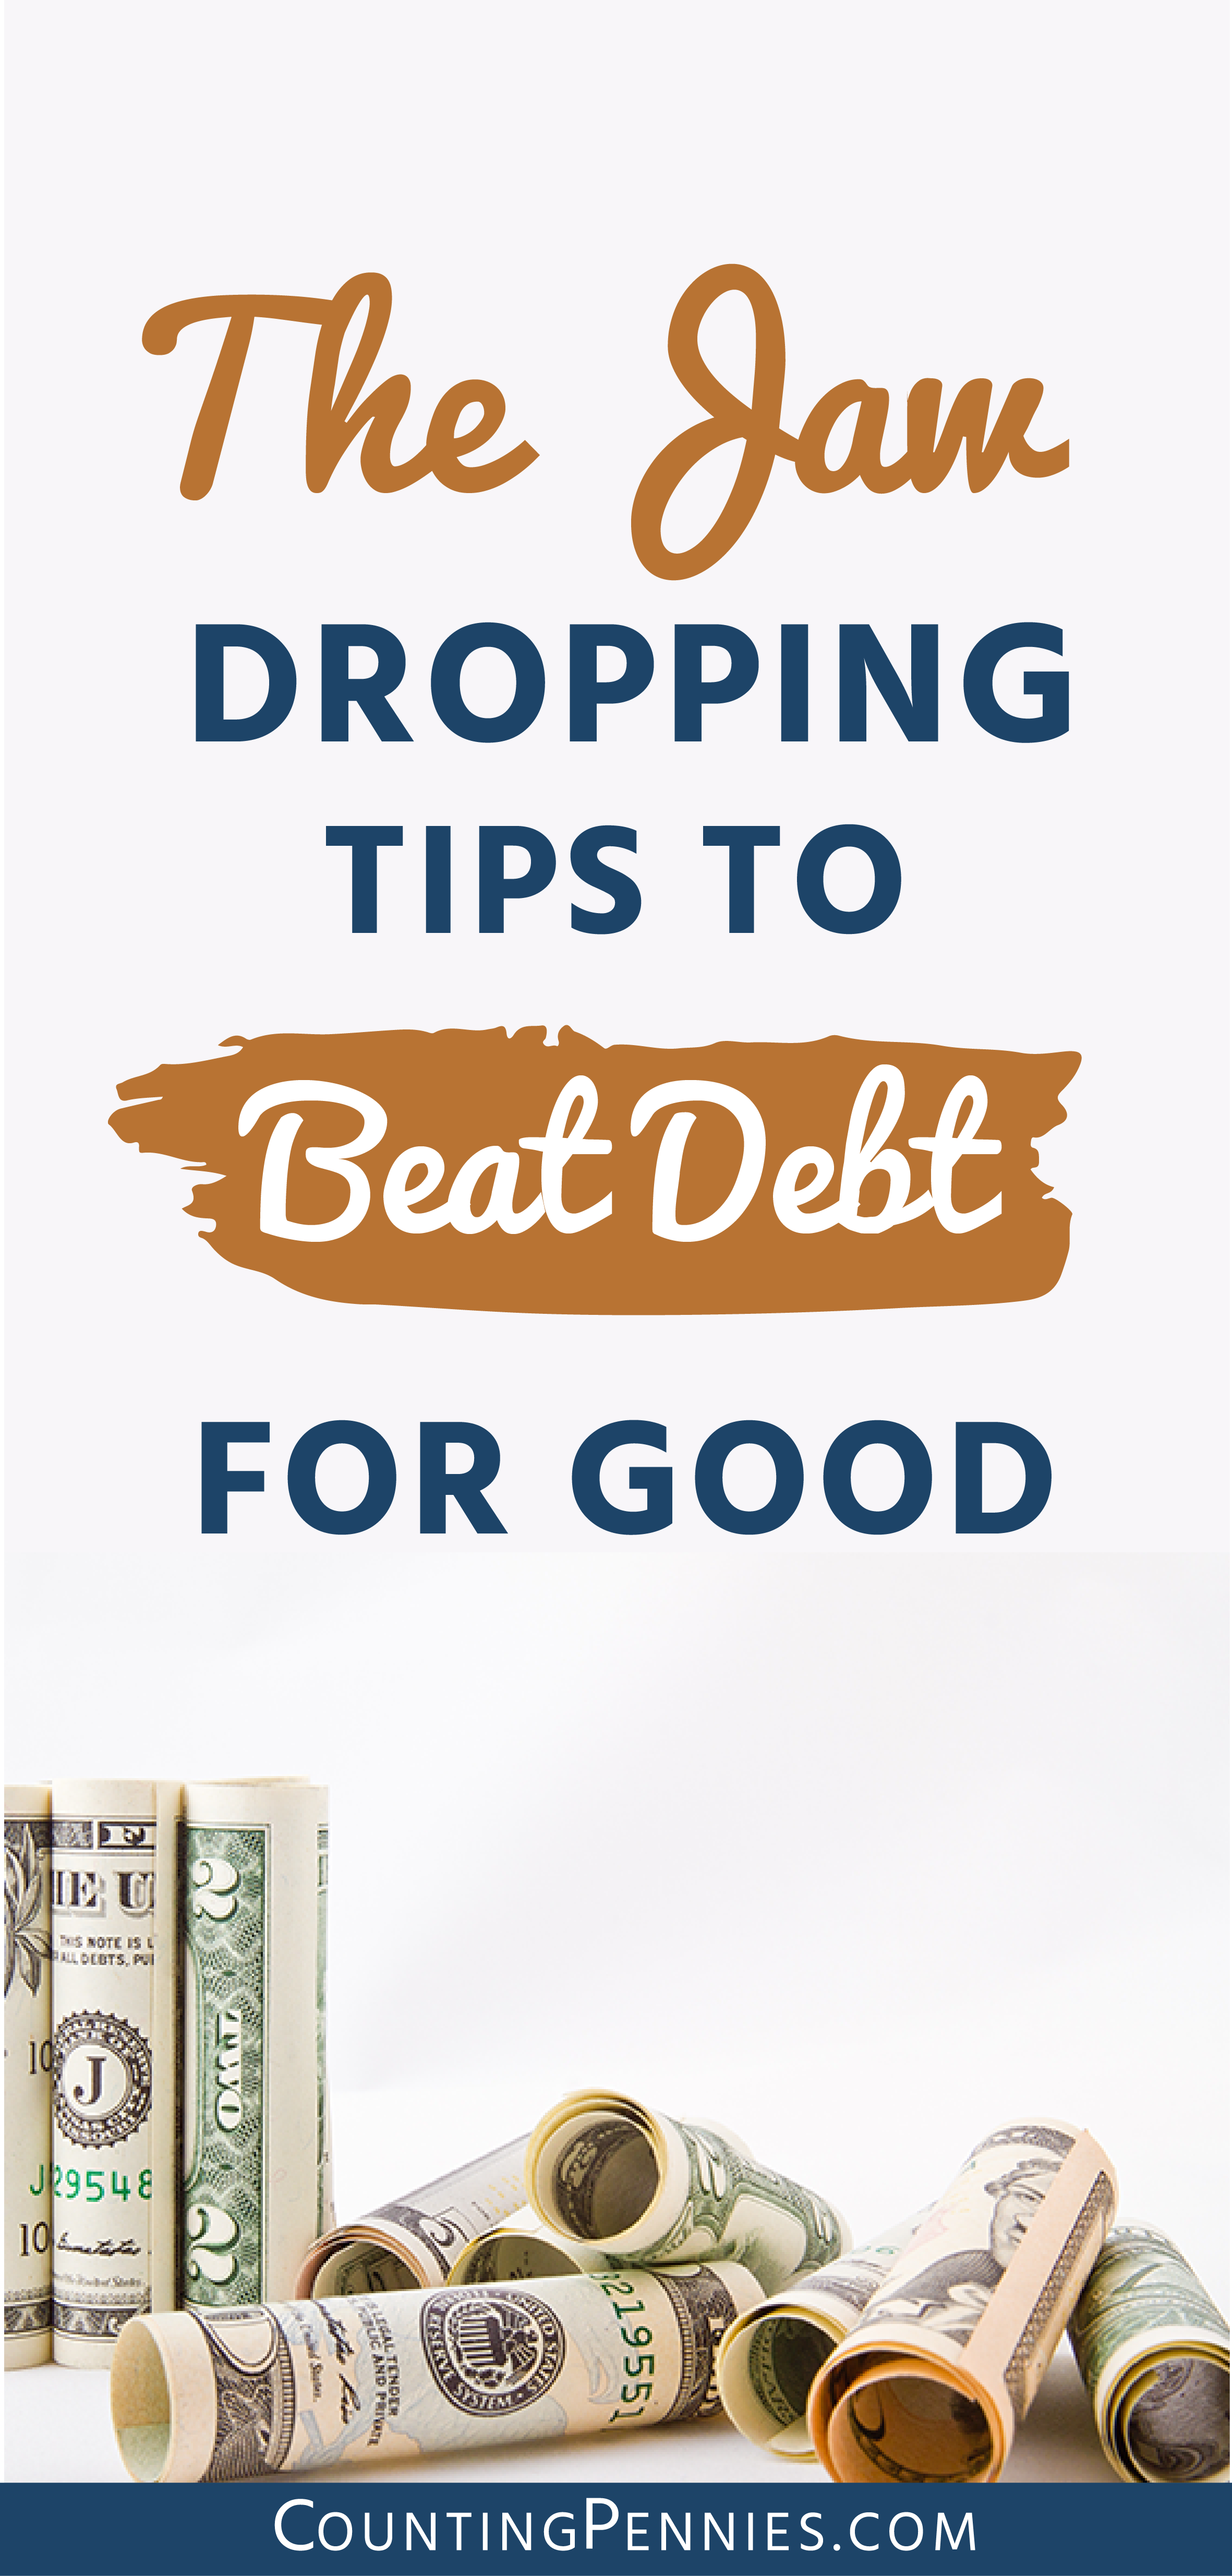 How To Beat Debt Your Guide To Getting Out Of Debt Are you in debt